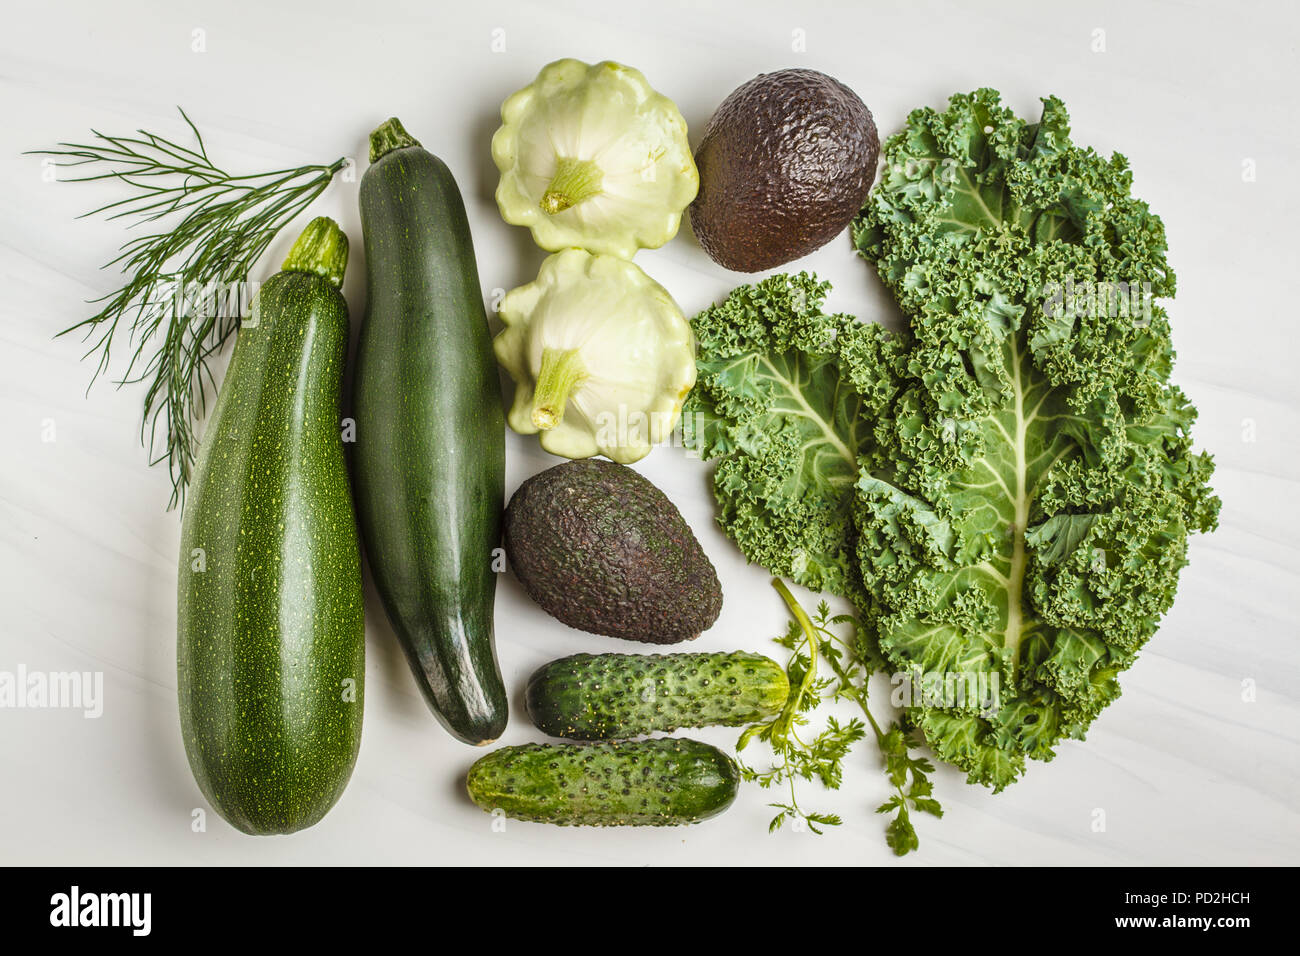 Assortment of green vegetables on white background, top view. Fruits and vegetables containing chlorophyll. - Stock Image